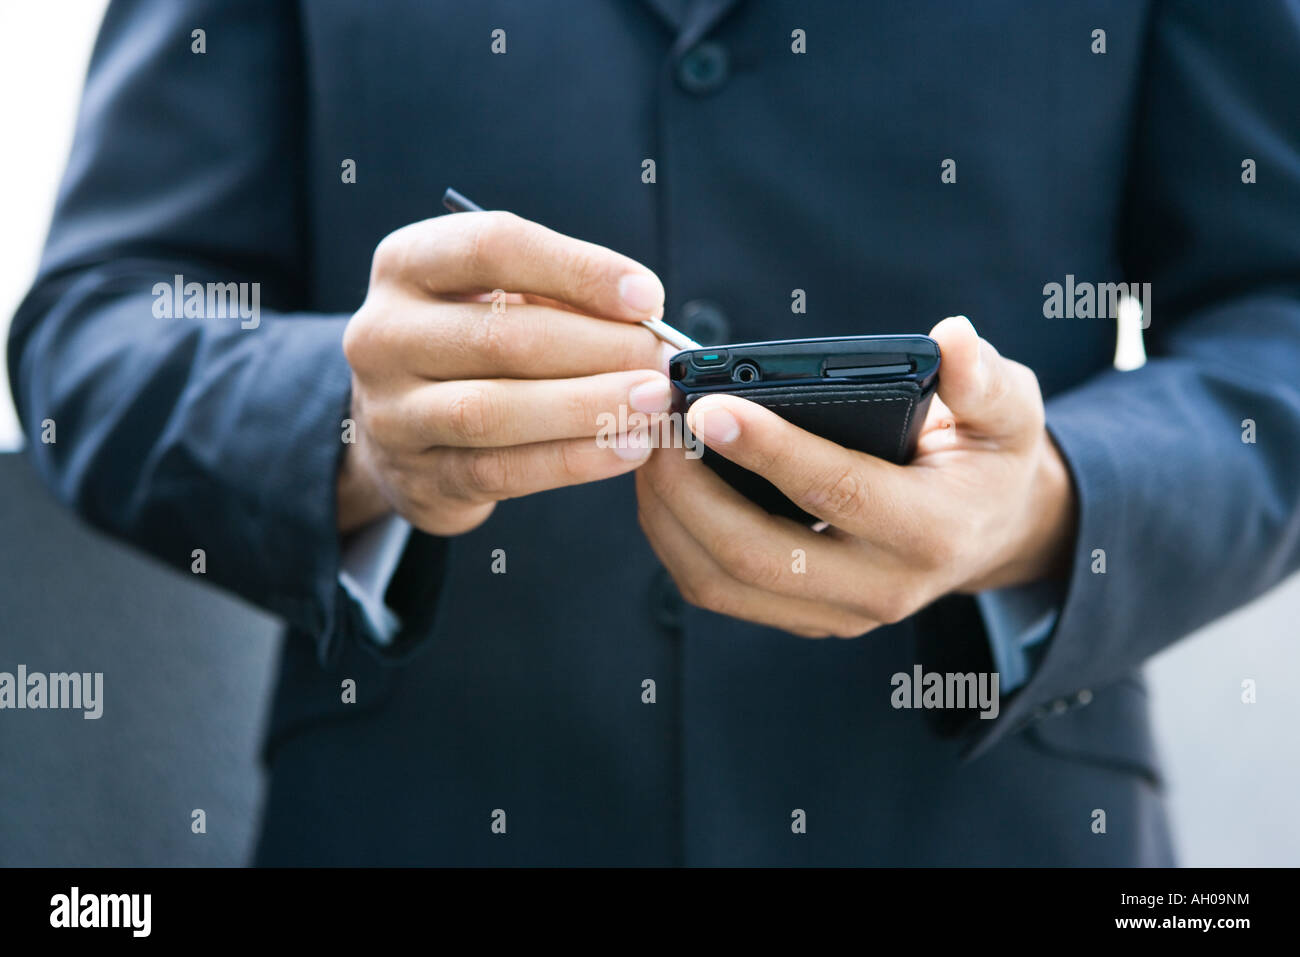 Businessman using palmtop, cropped view - Stock Image